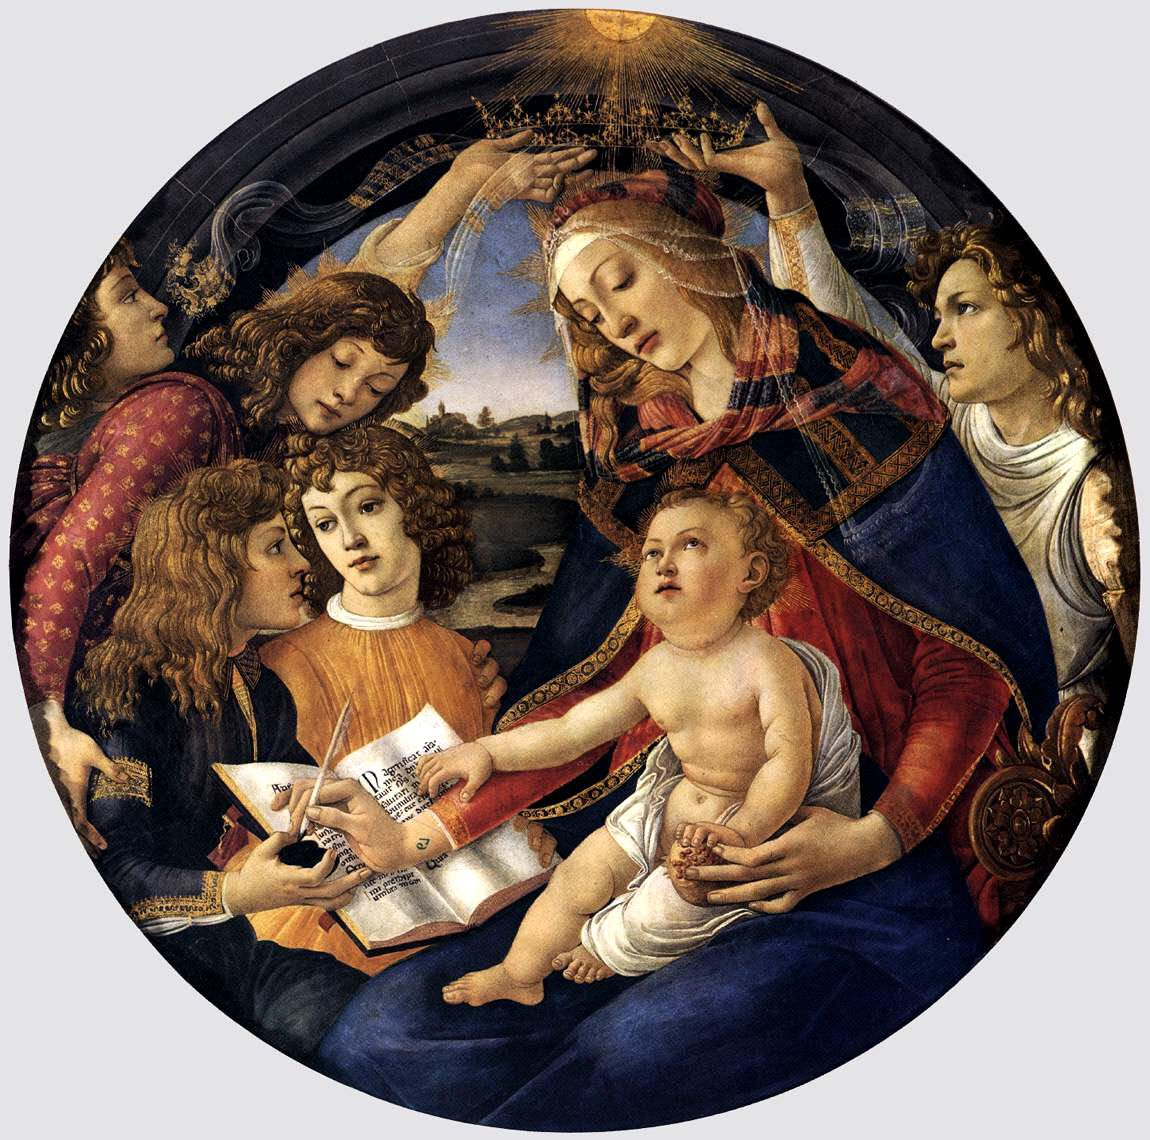 The most beautiful Madona ever painted: Madonna del Magnificat, Sandro Botticelli, Galleria degli Uffizi, Firenze http://en.wikipedia.org/wiki/Madonna_of_the_Magnificat